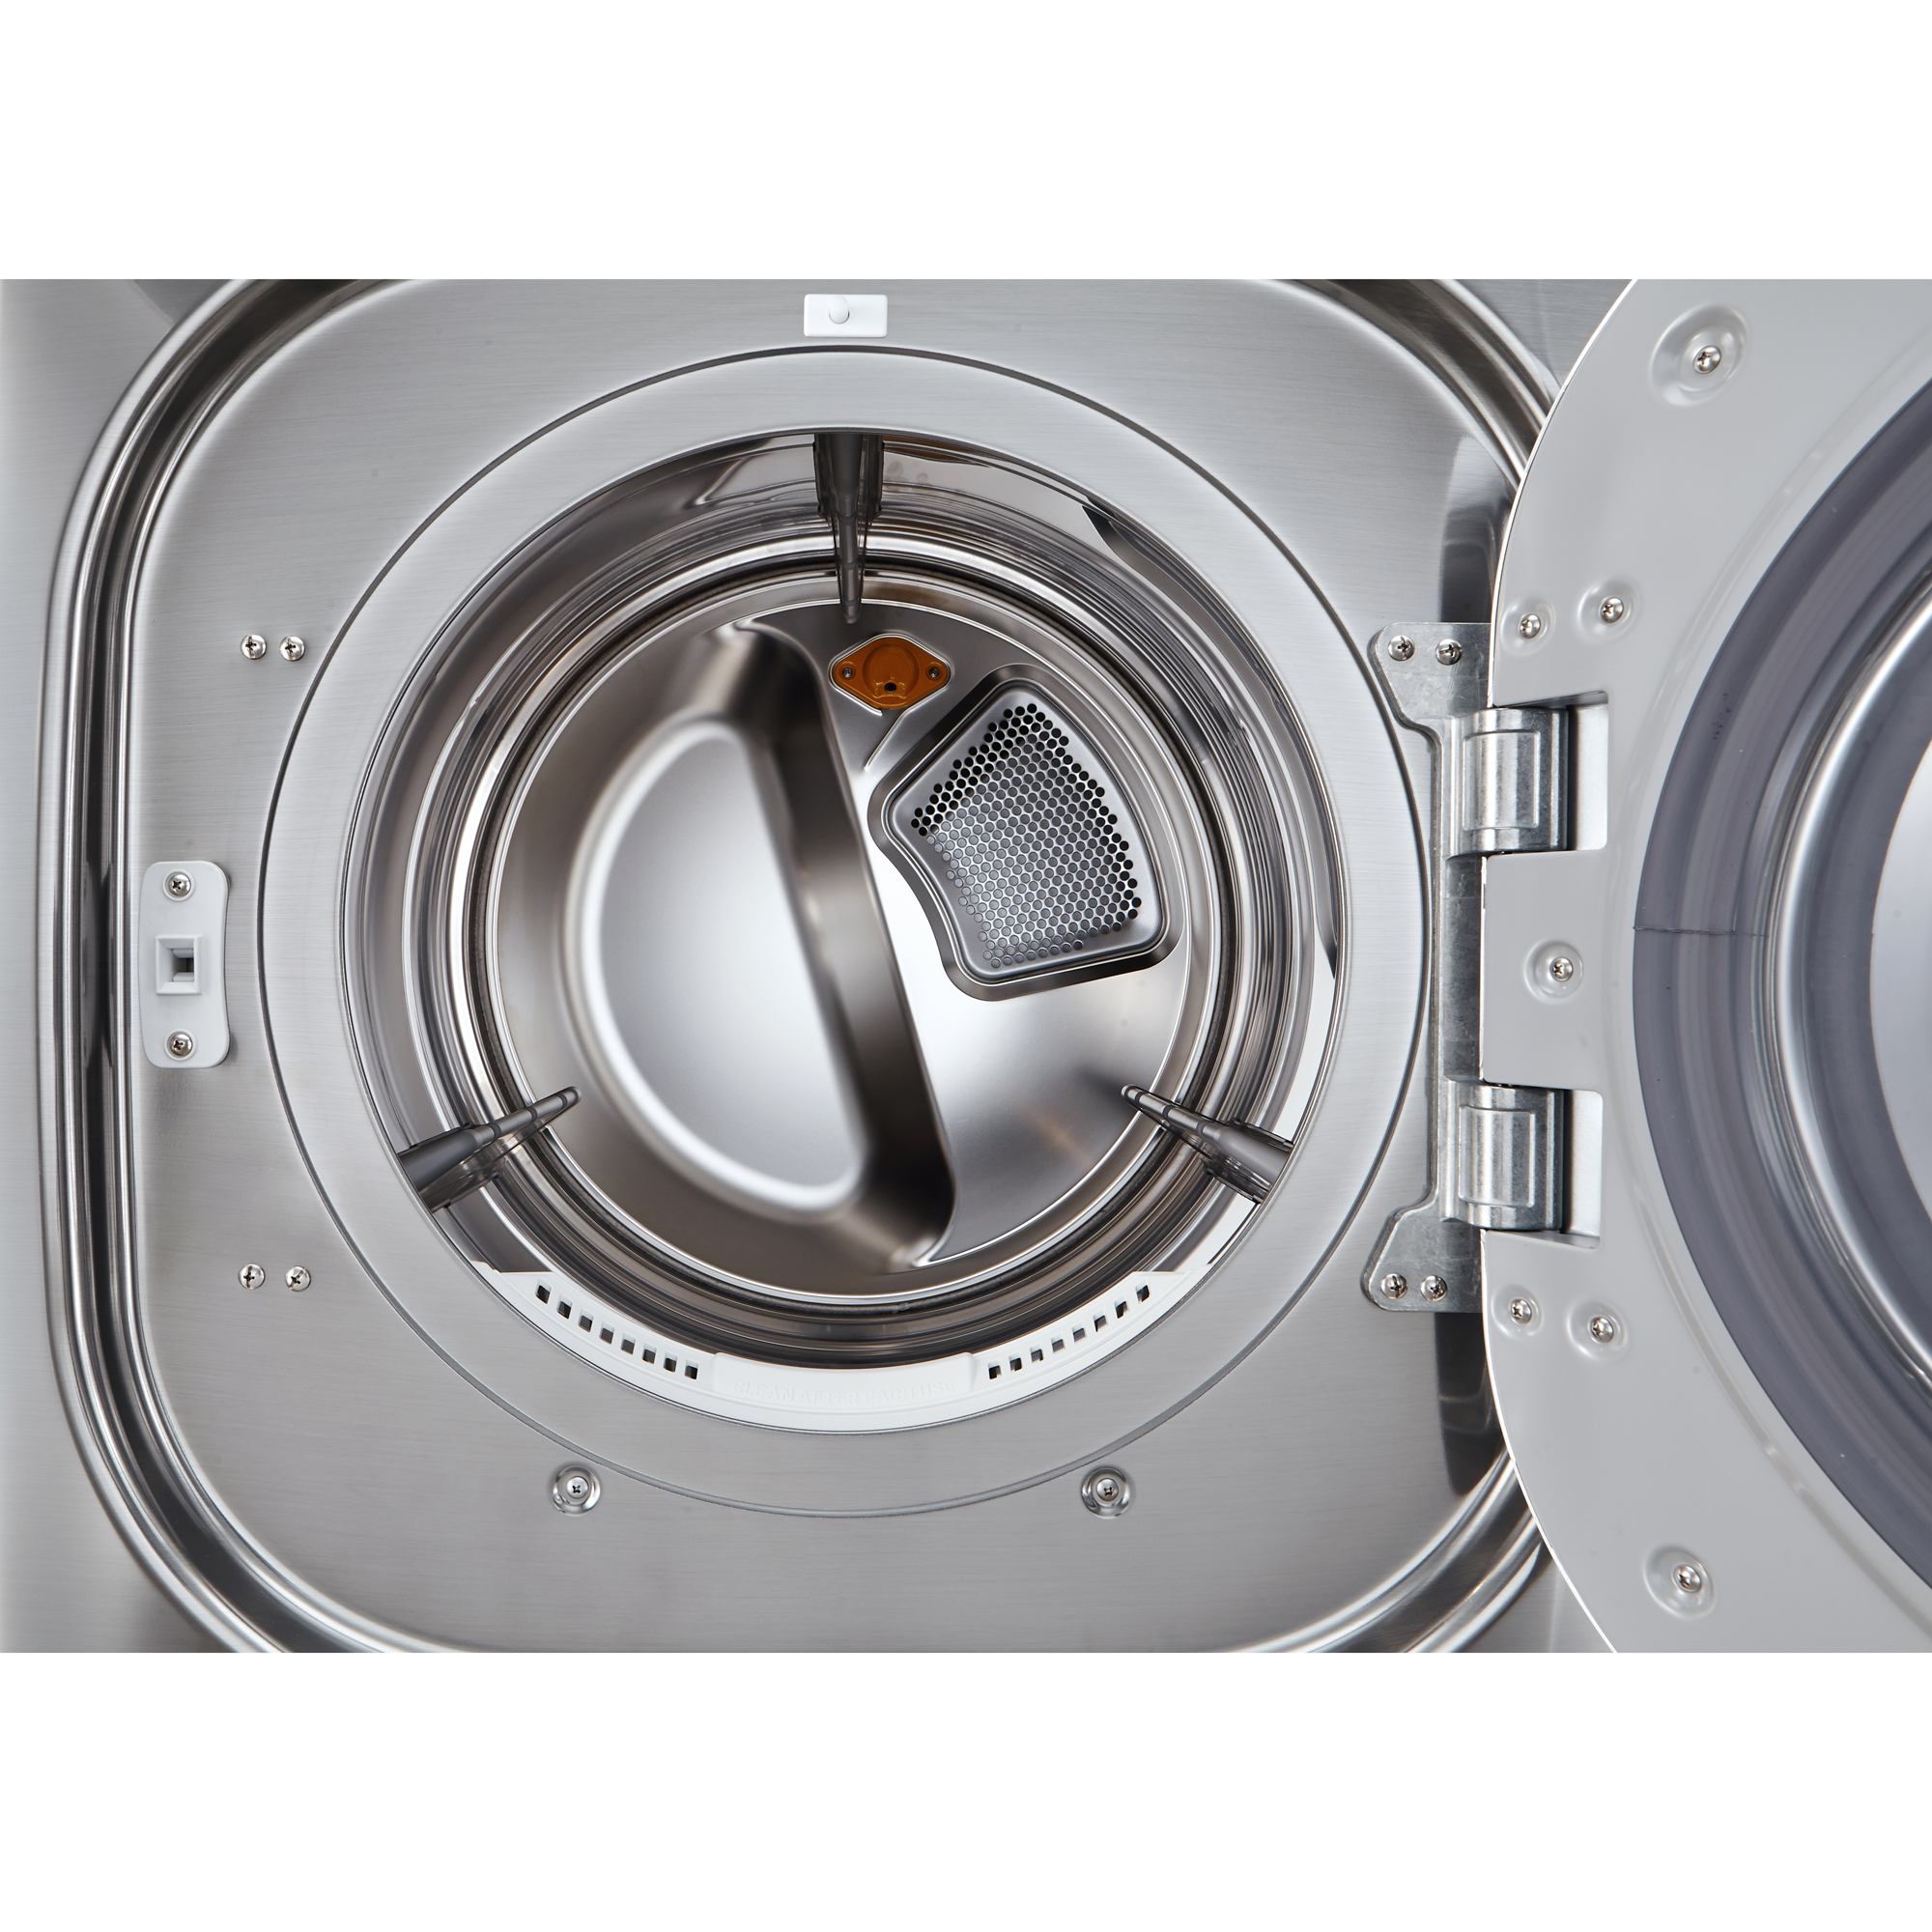 LG DLGX4271V 7.4 cu ft. Ultra Large Capacity SteamDryer™ w/ NFC Tag-On Technology – Graphite Steel